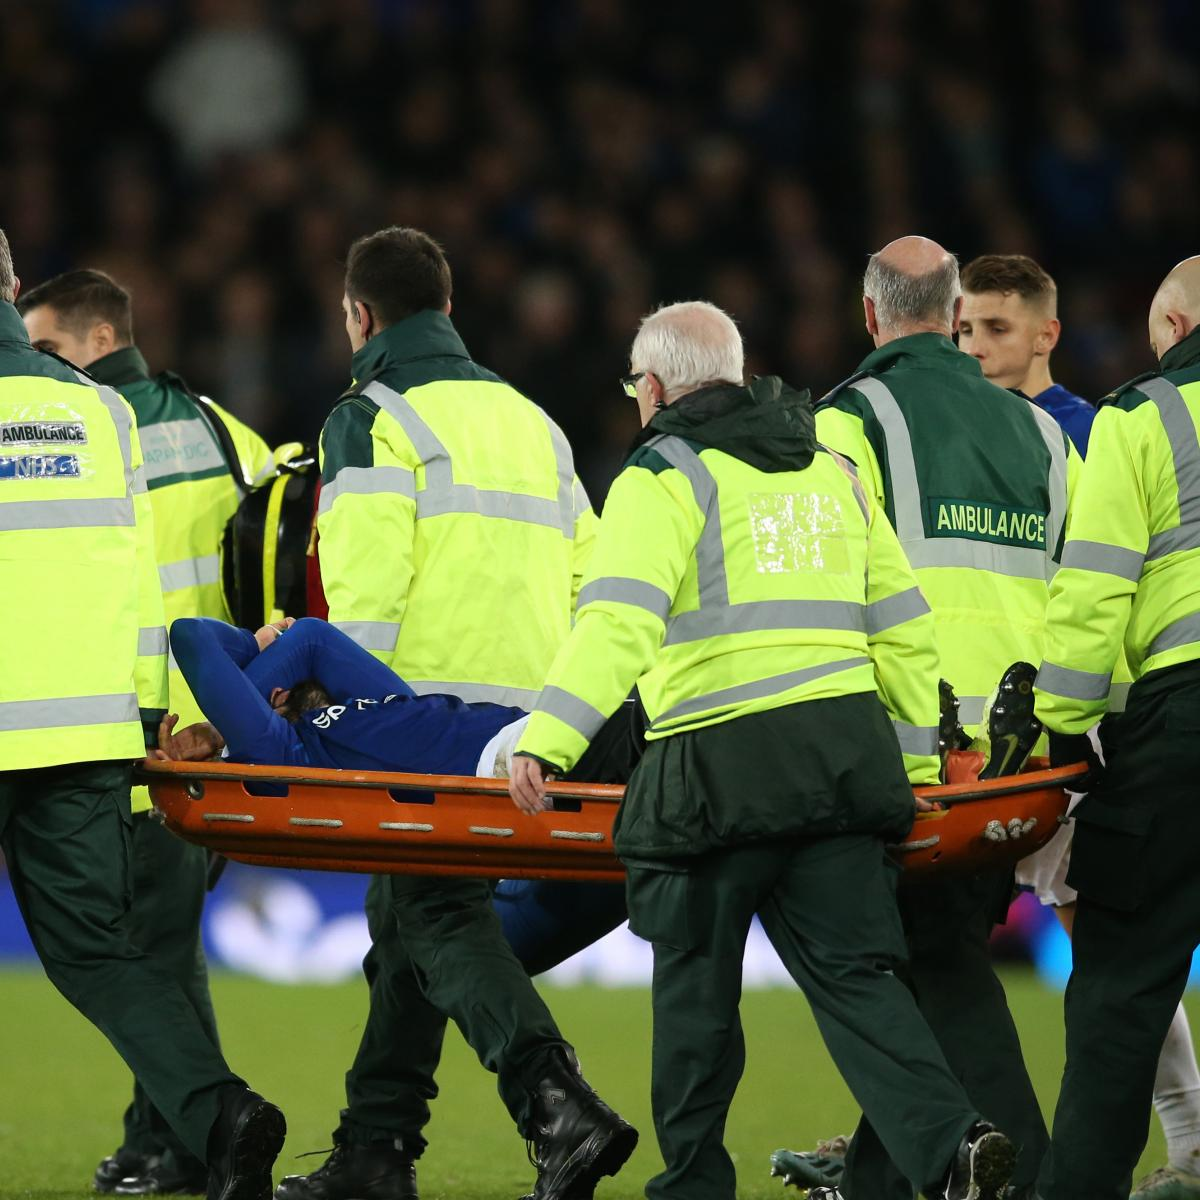 Everton's Andre Gomes Suffers Gruesome Leg Injury After